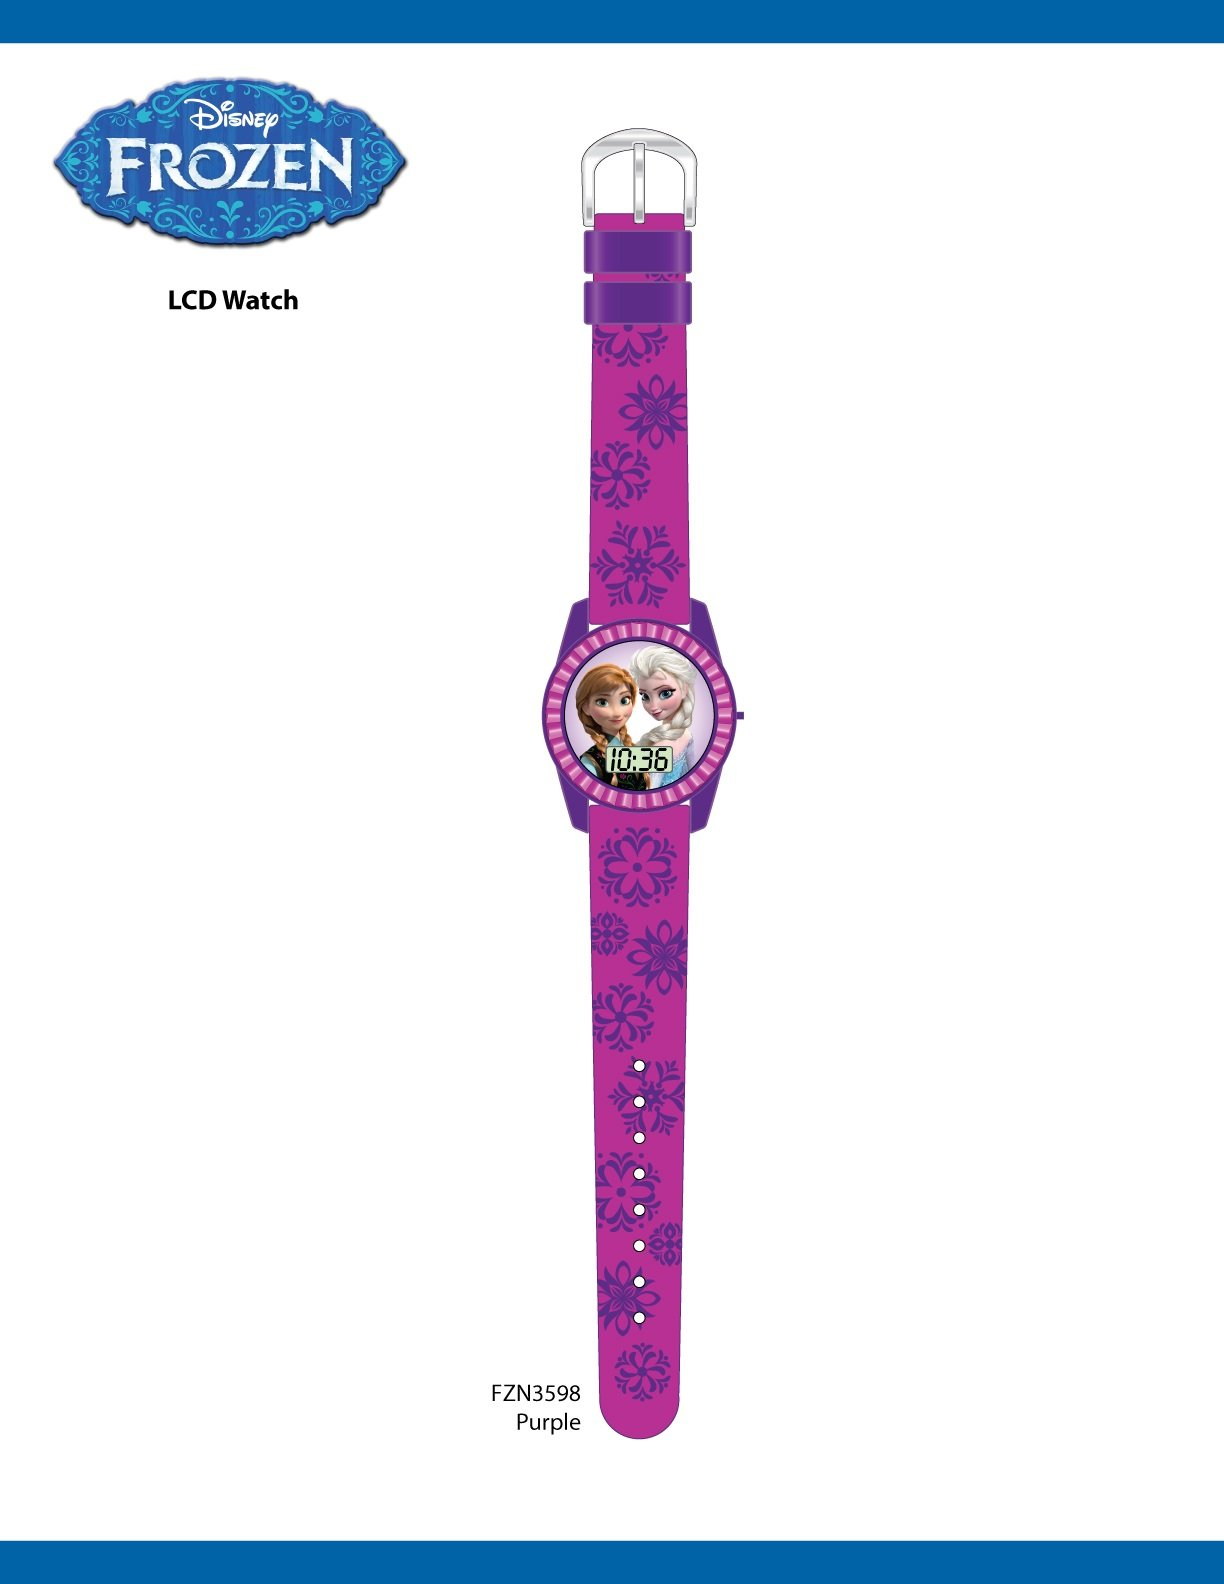 Disney's Frozen Kids' Digital Watch with Elsa and Anna on the Dial, Purple Casing, Comfortable Pink Strap, Easy to Buckle, Safe for Children – Model: FZN3598